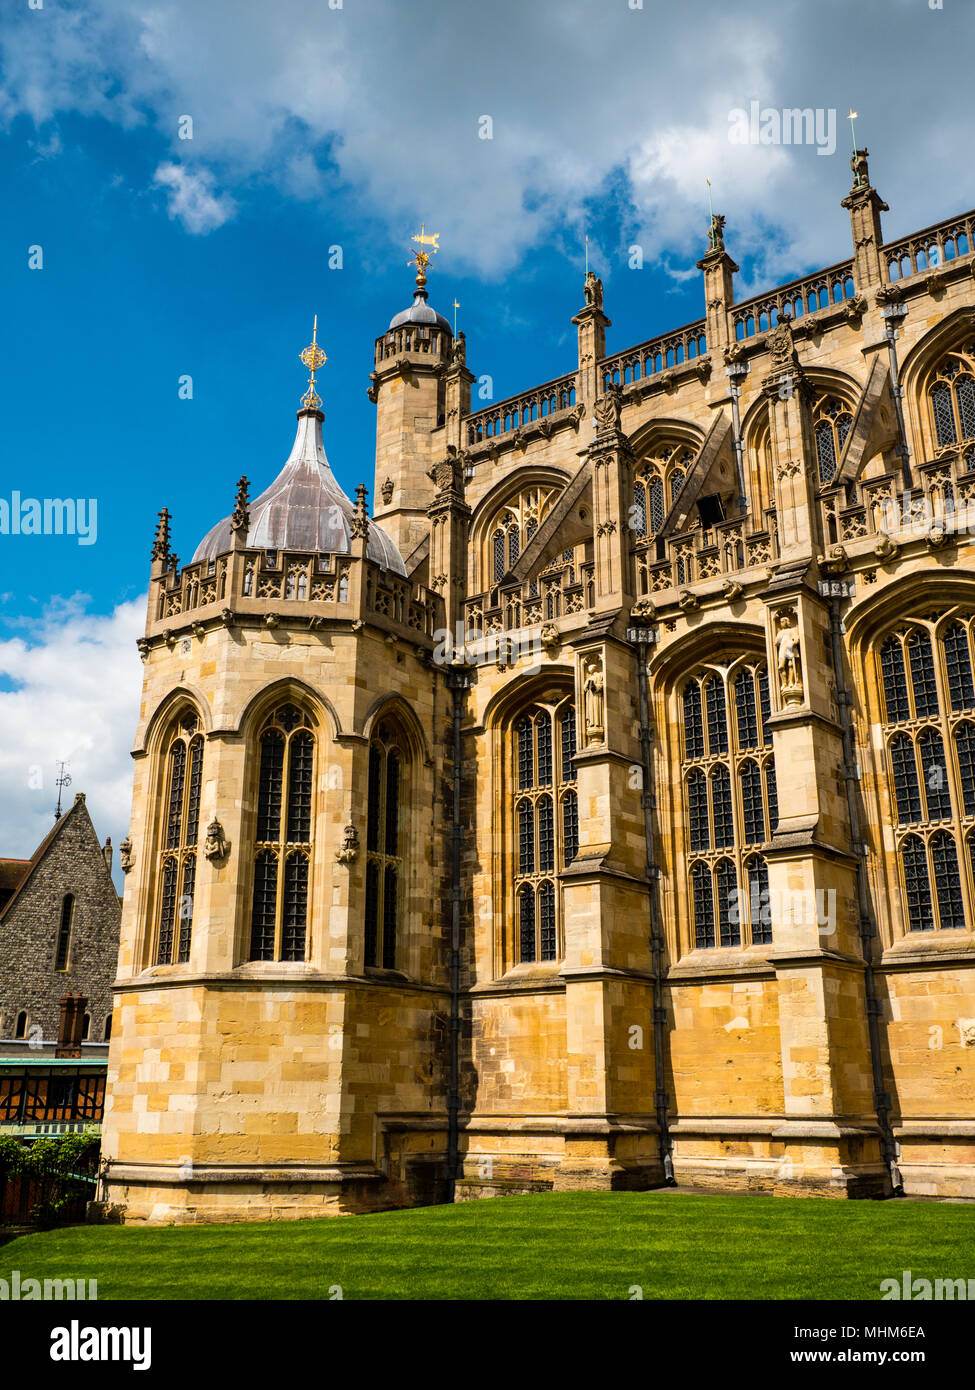 St Georges Chapel, (location of 2018 Royal Wedding), Windsor Castle, Windsor, Berkshire, England - Stock Image